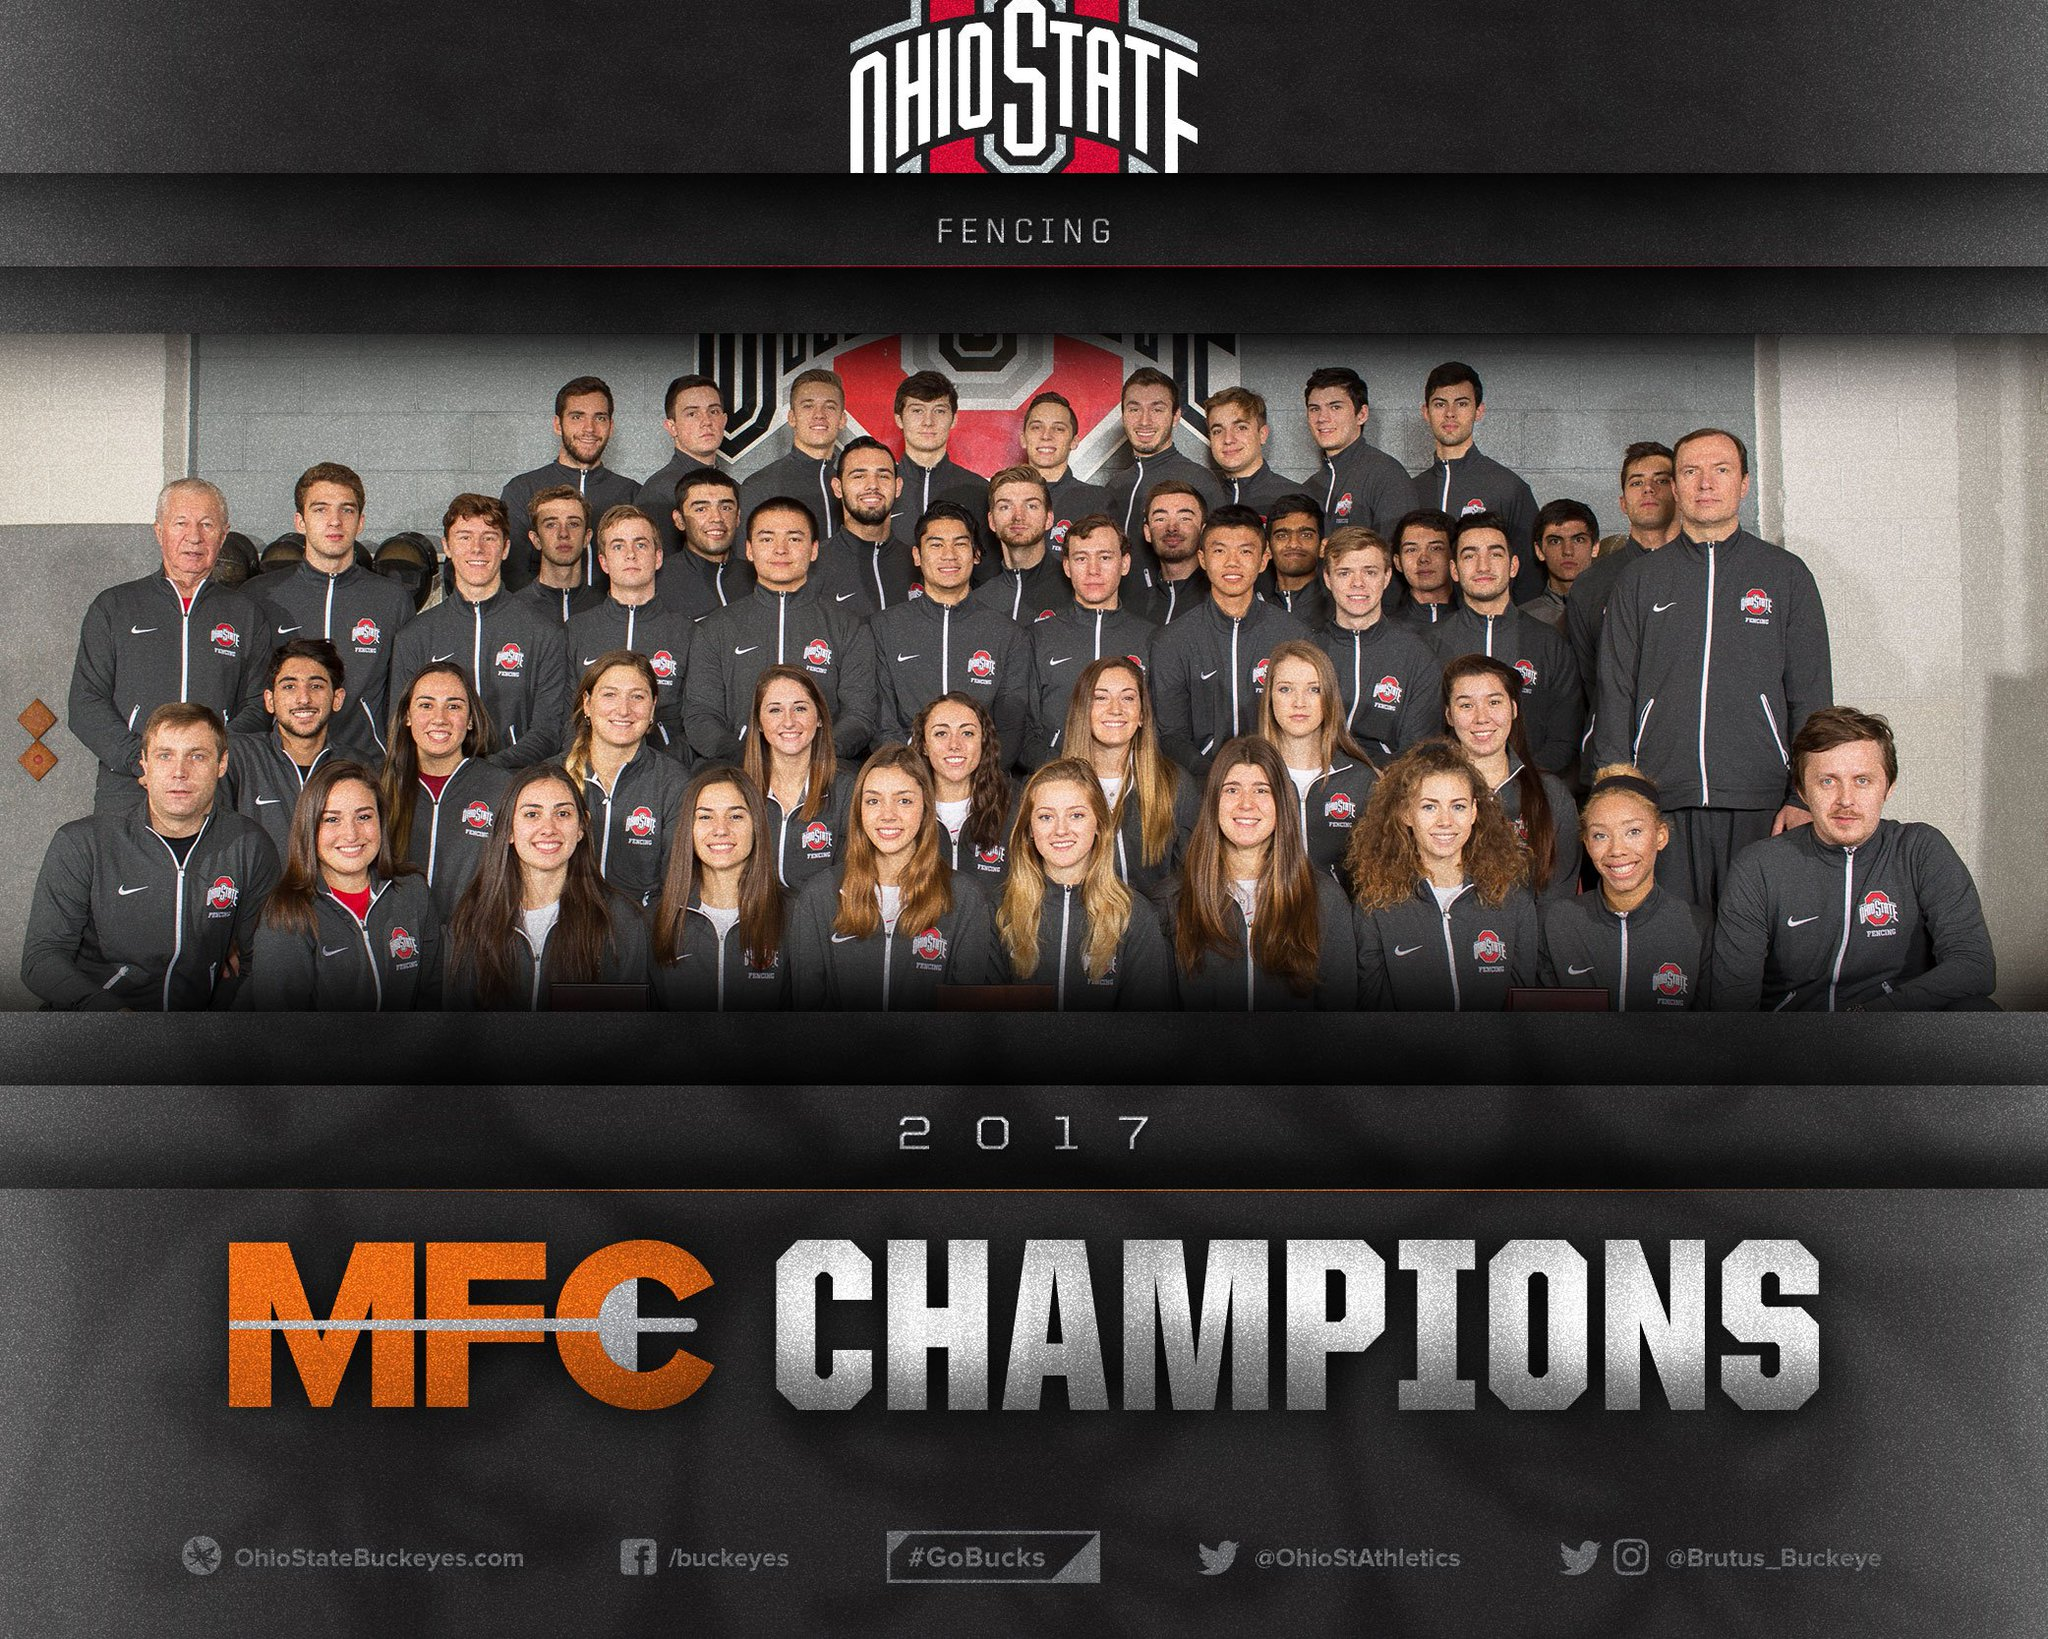 Ohiostatebuckeyes com the ohio state university official athletic - Ohio State Ends Competition In First Place With 1605 Points The